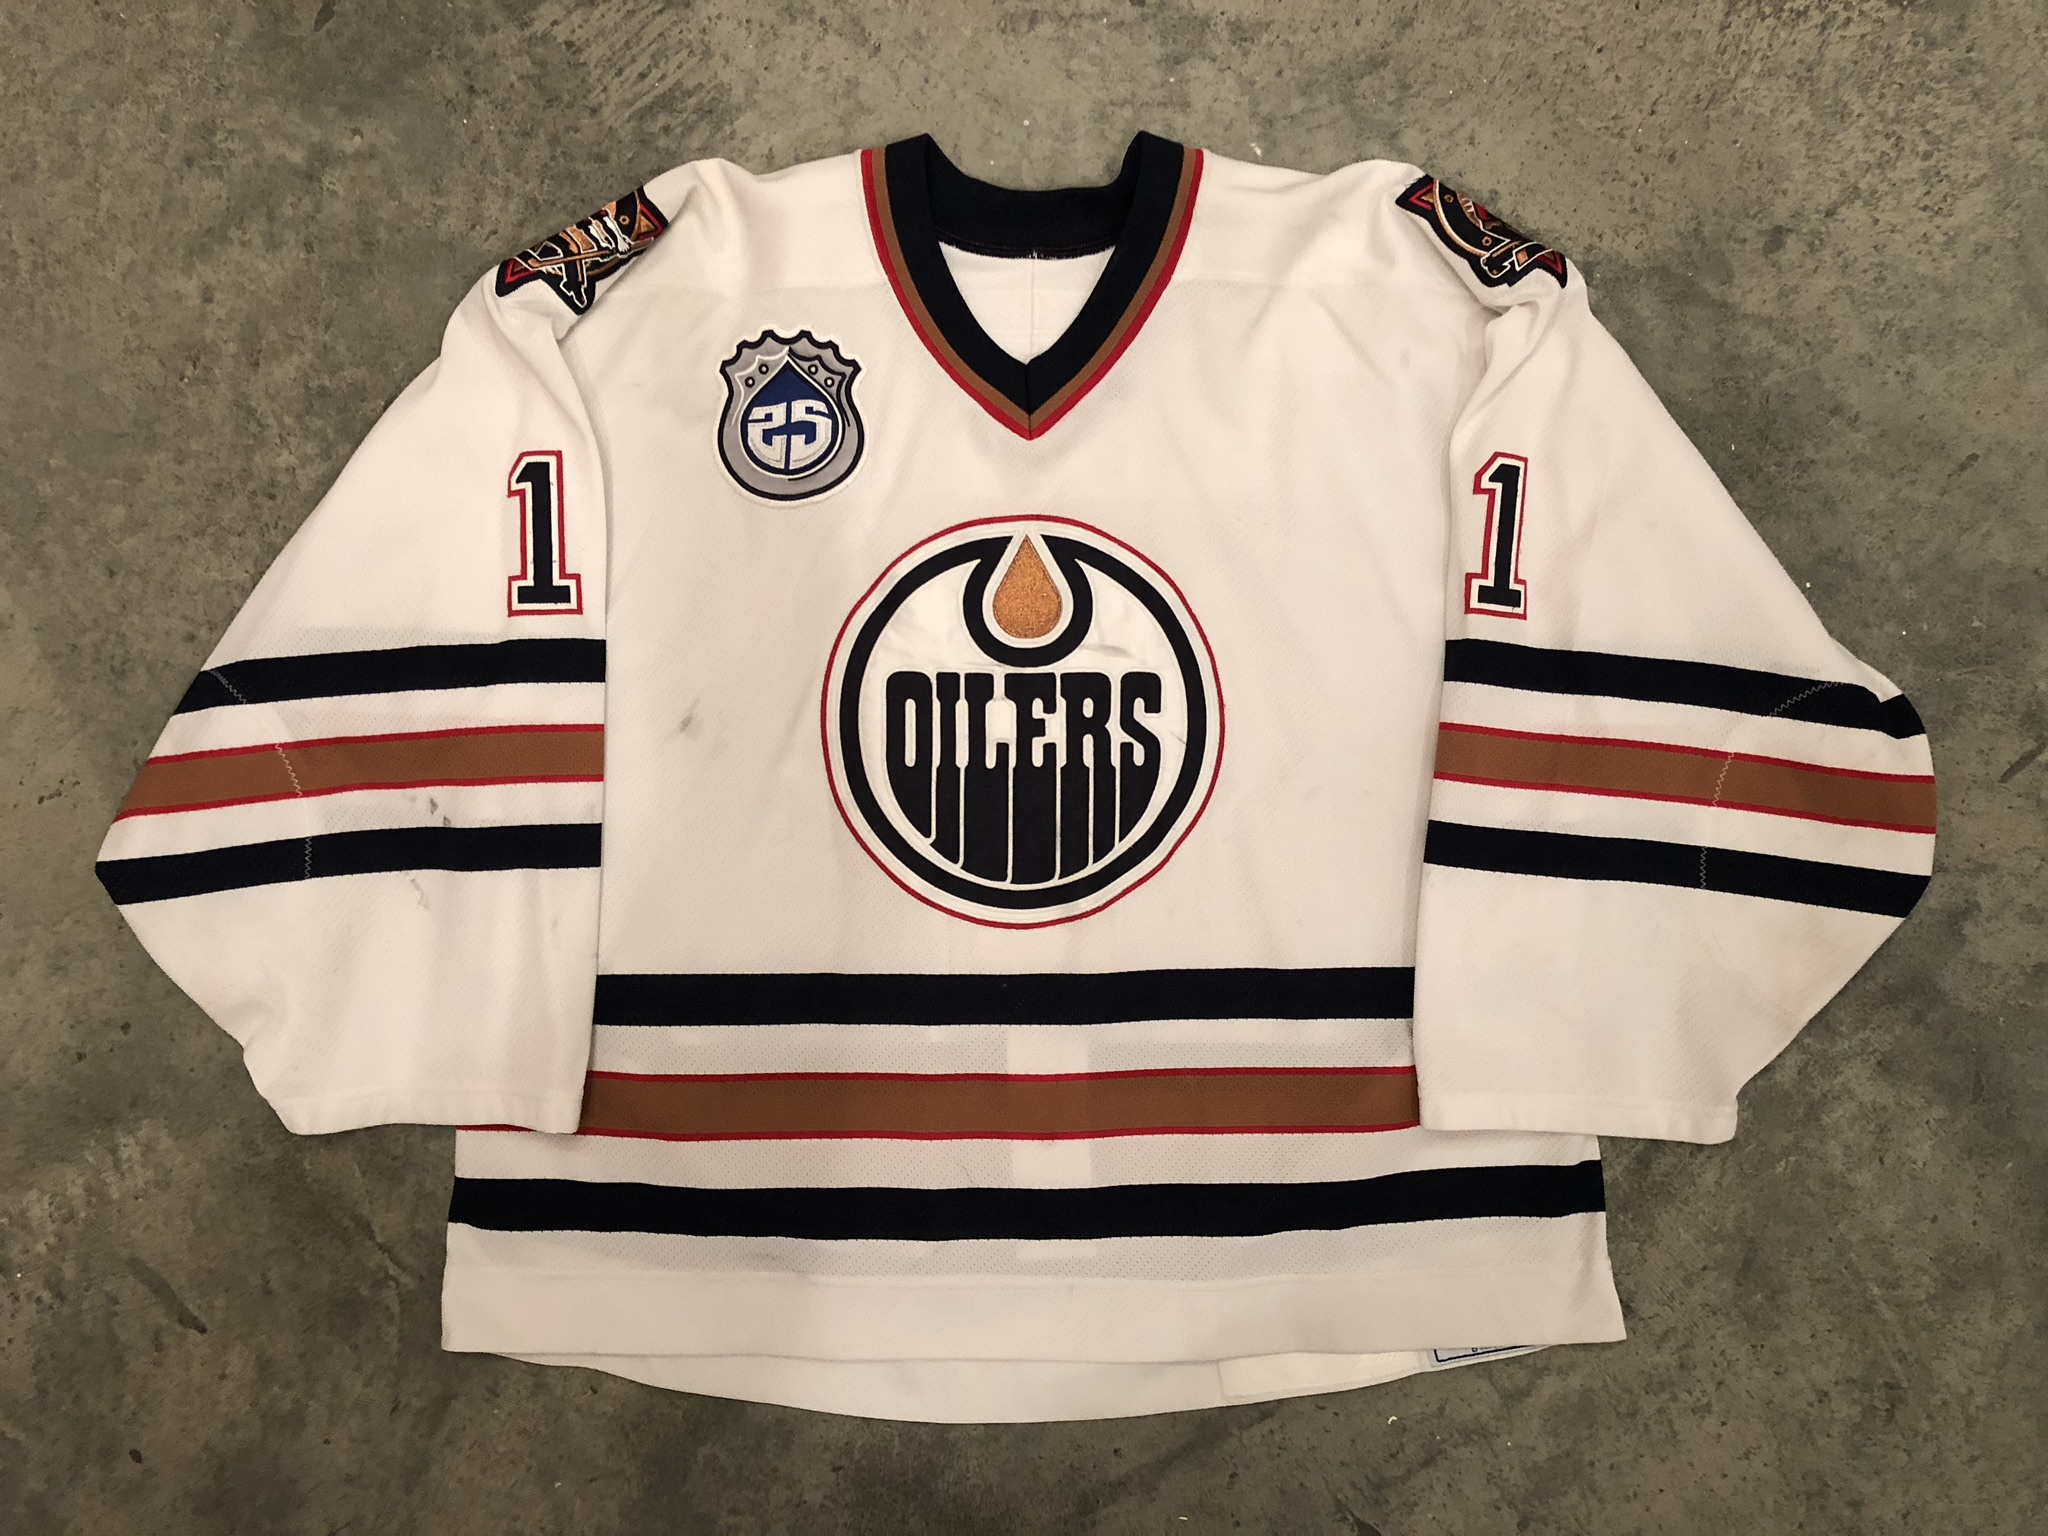 2003-04 Ty Conklin game worn home jersey with the Oilers 25th anniversary patch